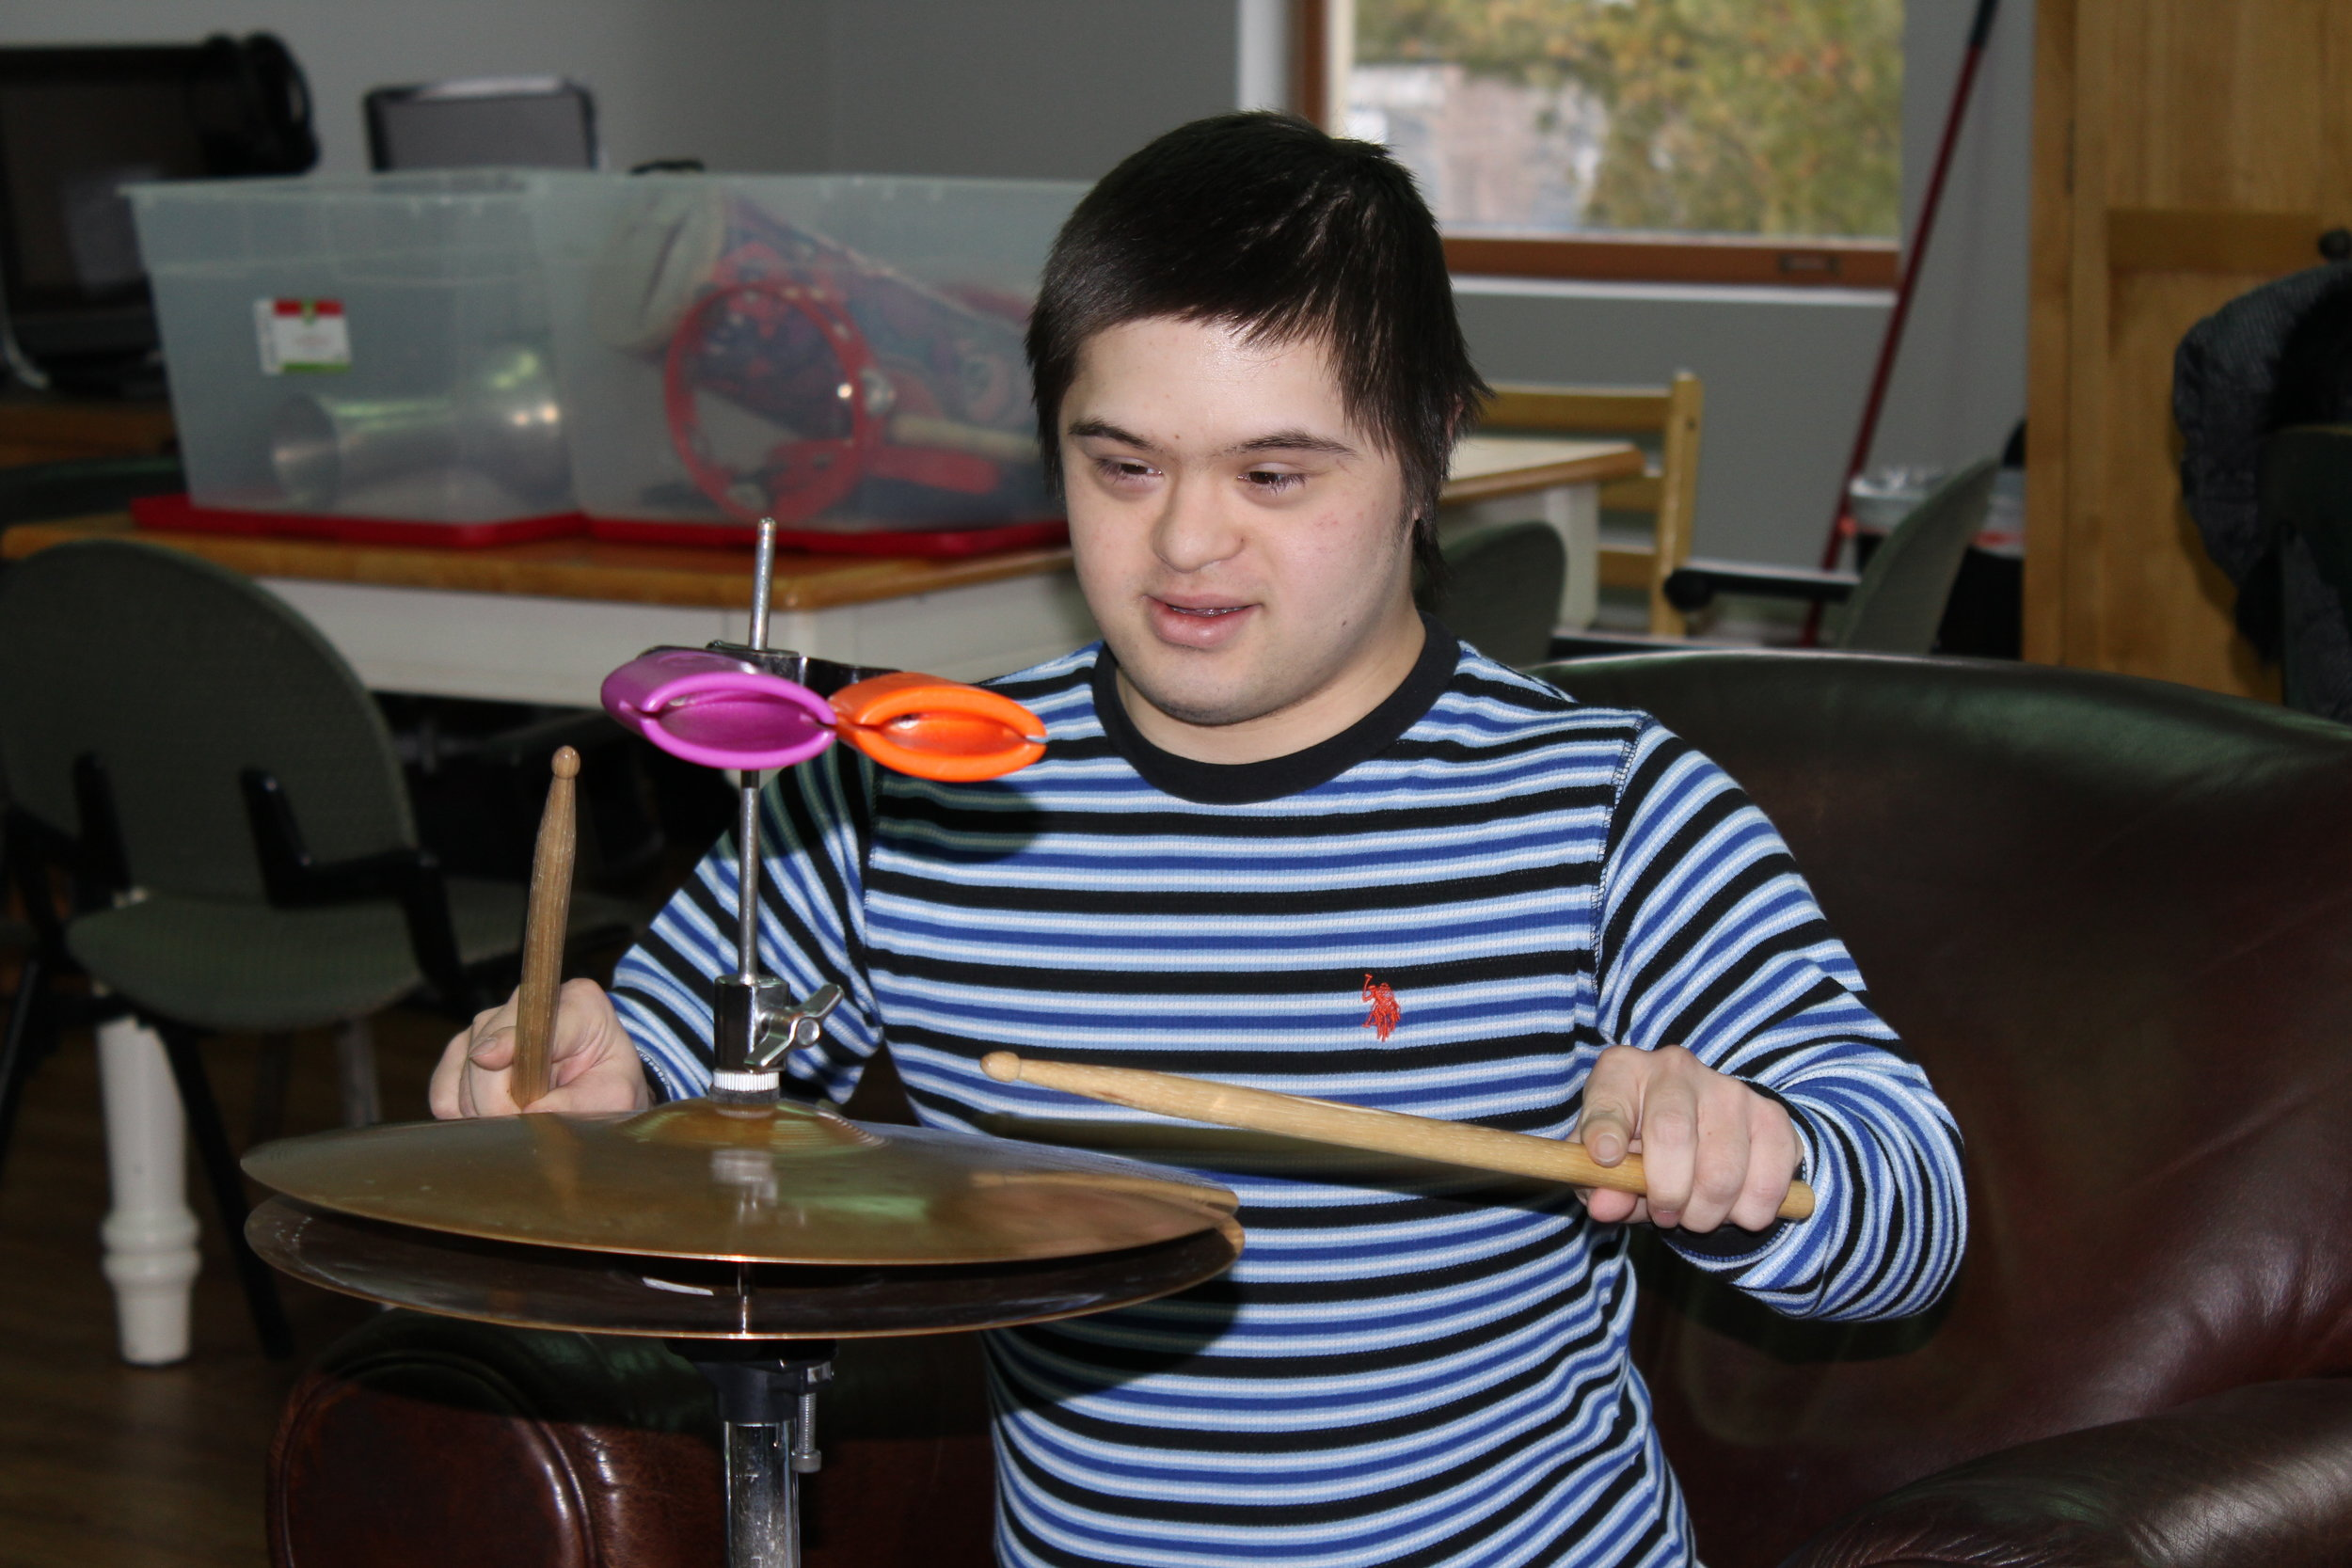 A male Our Place participant is using drumsticks on a cymbal